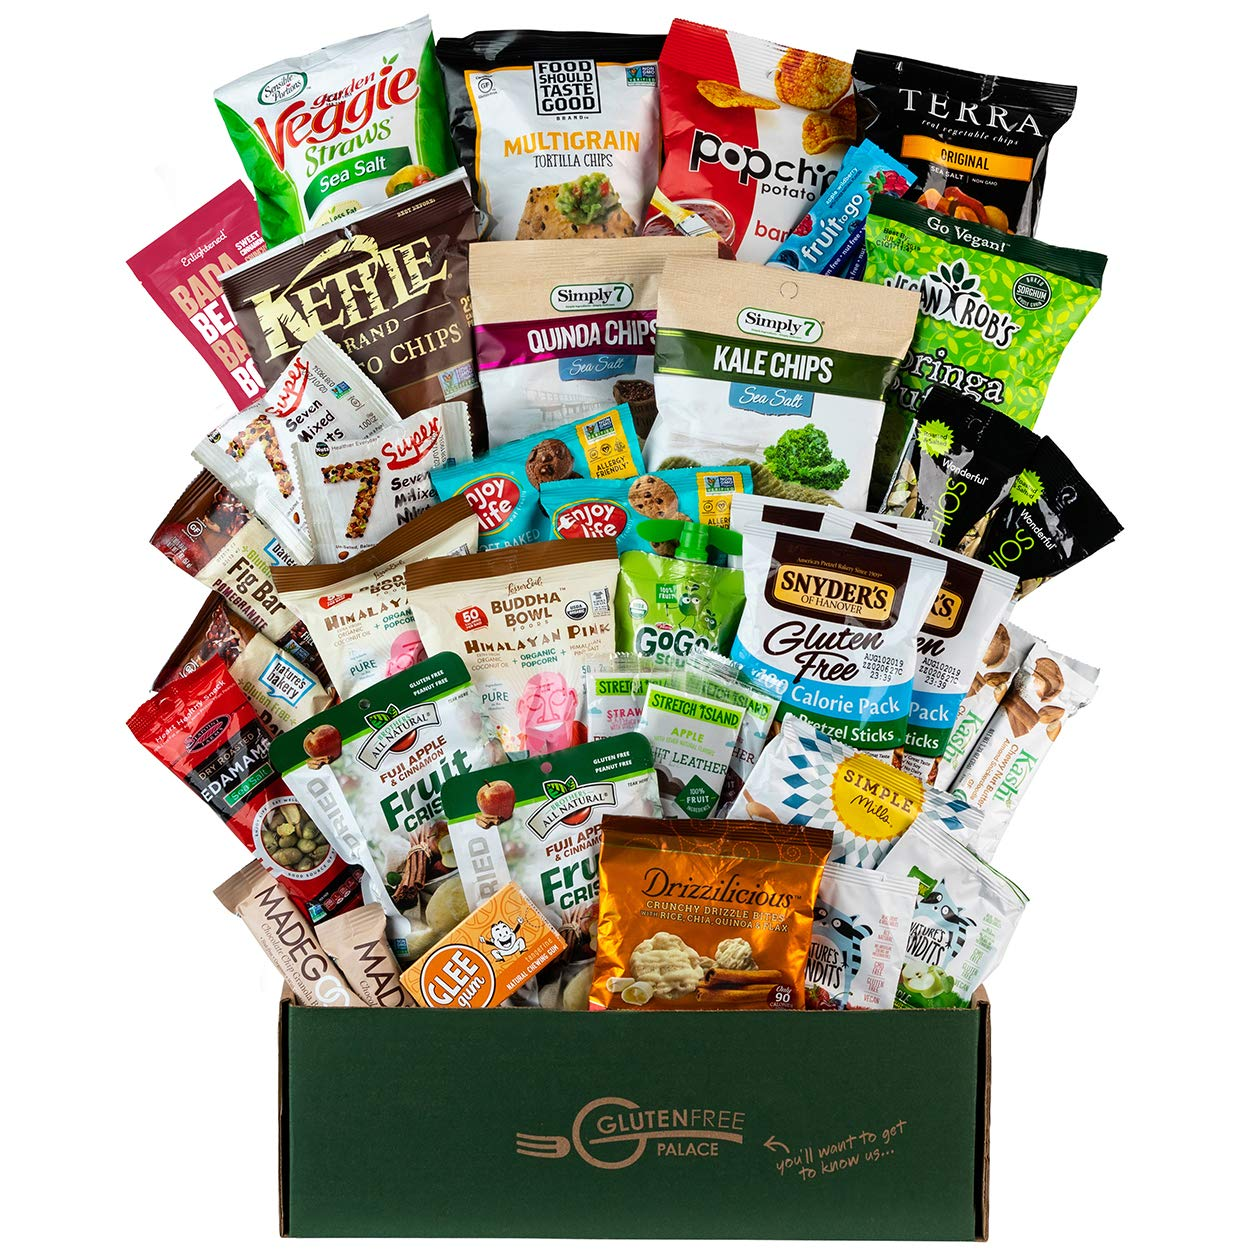 SNACK ATTACK VEGAN Care Package - Healthy Snack Box featuring VEGAN, GLUTEN FREE, DAIRY FREE, KOSHER & NON GMO SNACKS for College Students, Employees, Clients, Military and Holiday Gifts (40 Count) by Gluten Free Palace